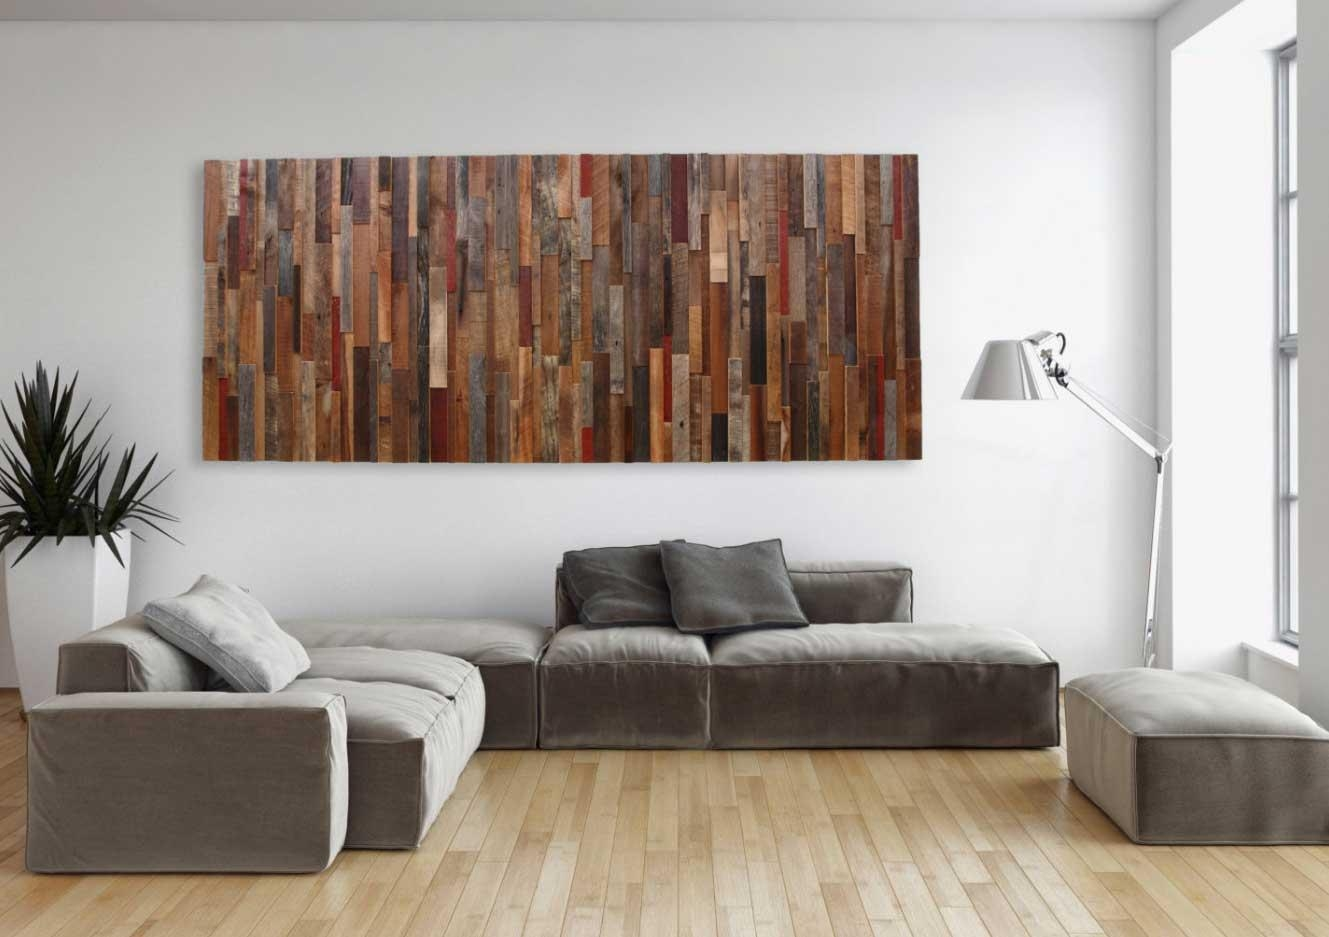 Oversized Wall Art Contemporary Sculpture Ideas | Home Interior Intended For Oversized Wall Art Contemporary (View 4 of 20)